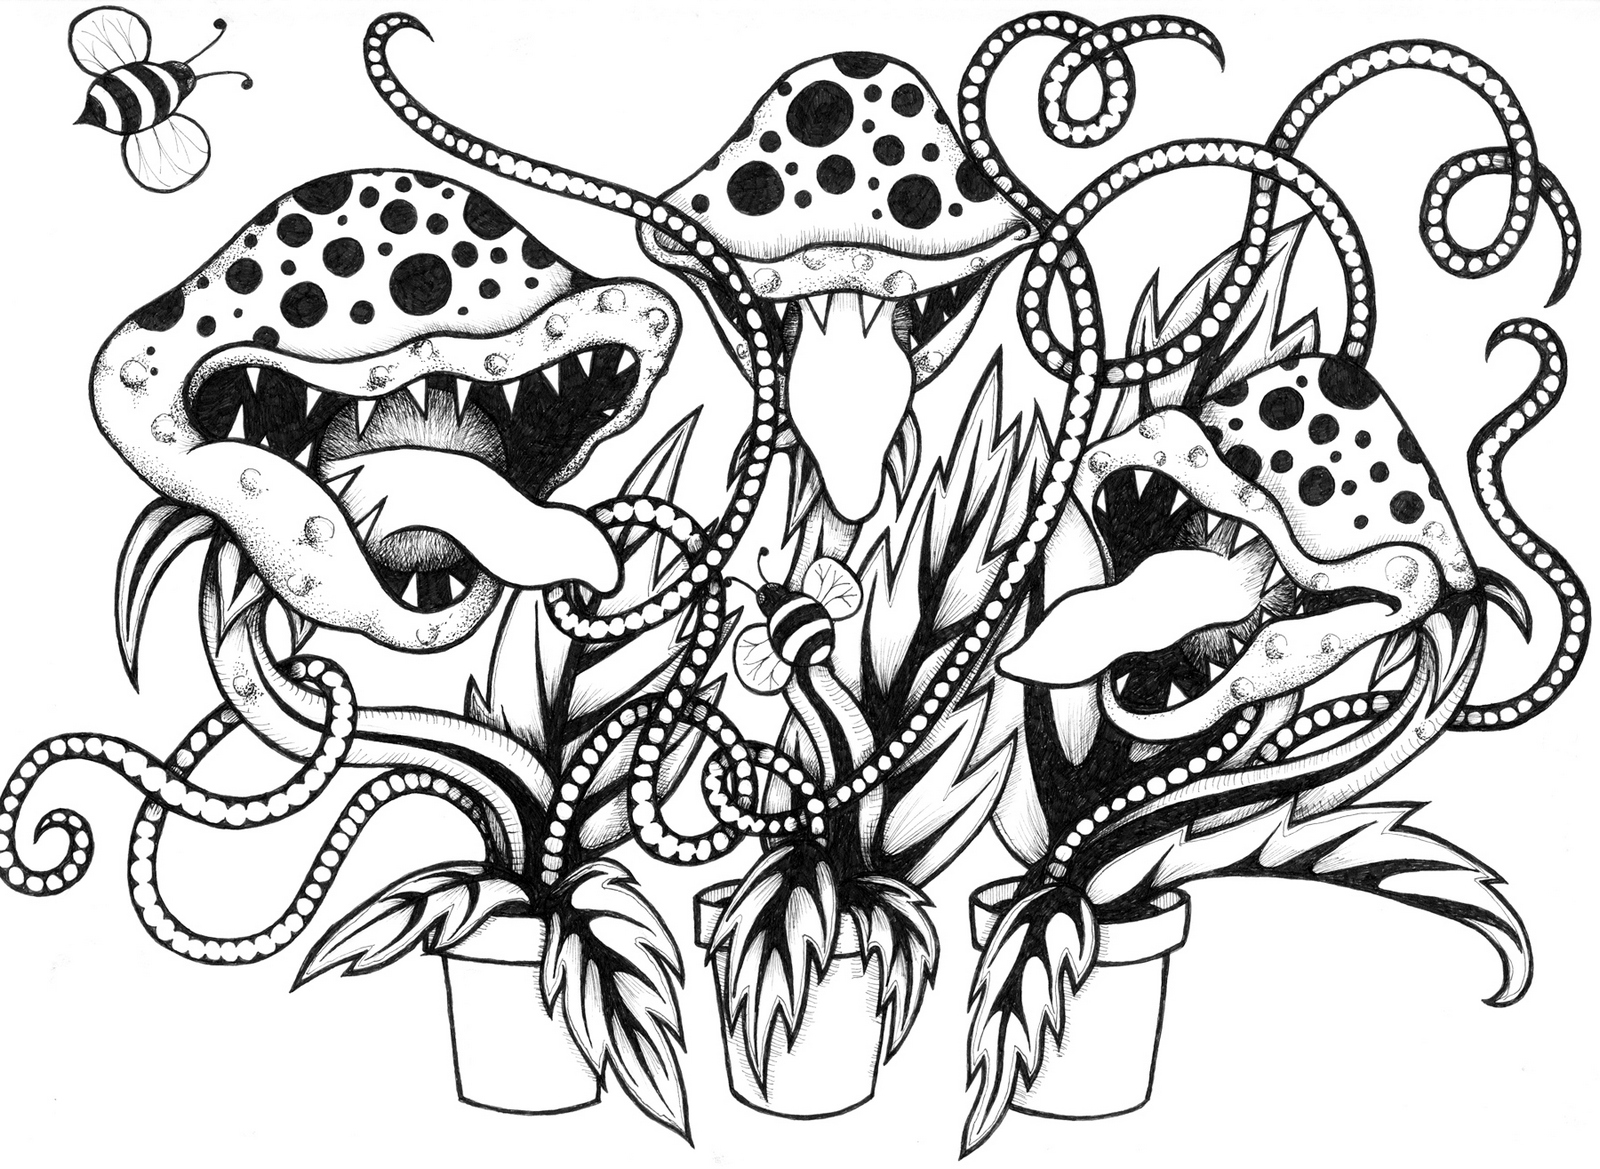 venus fly trap carnivorous plant coloring sheet